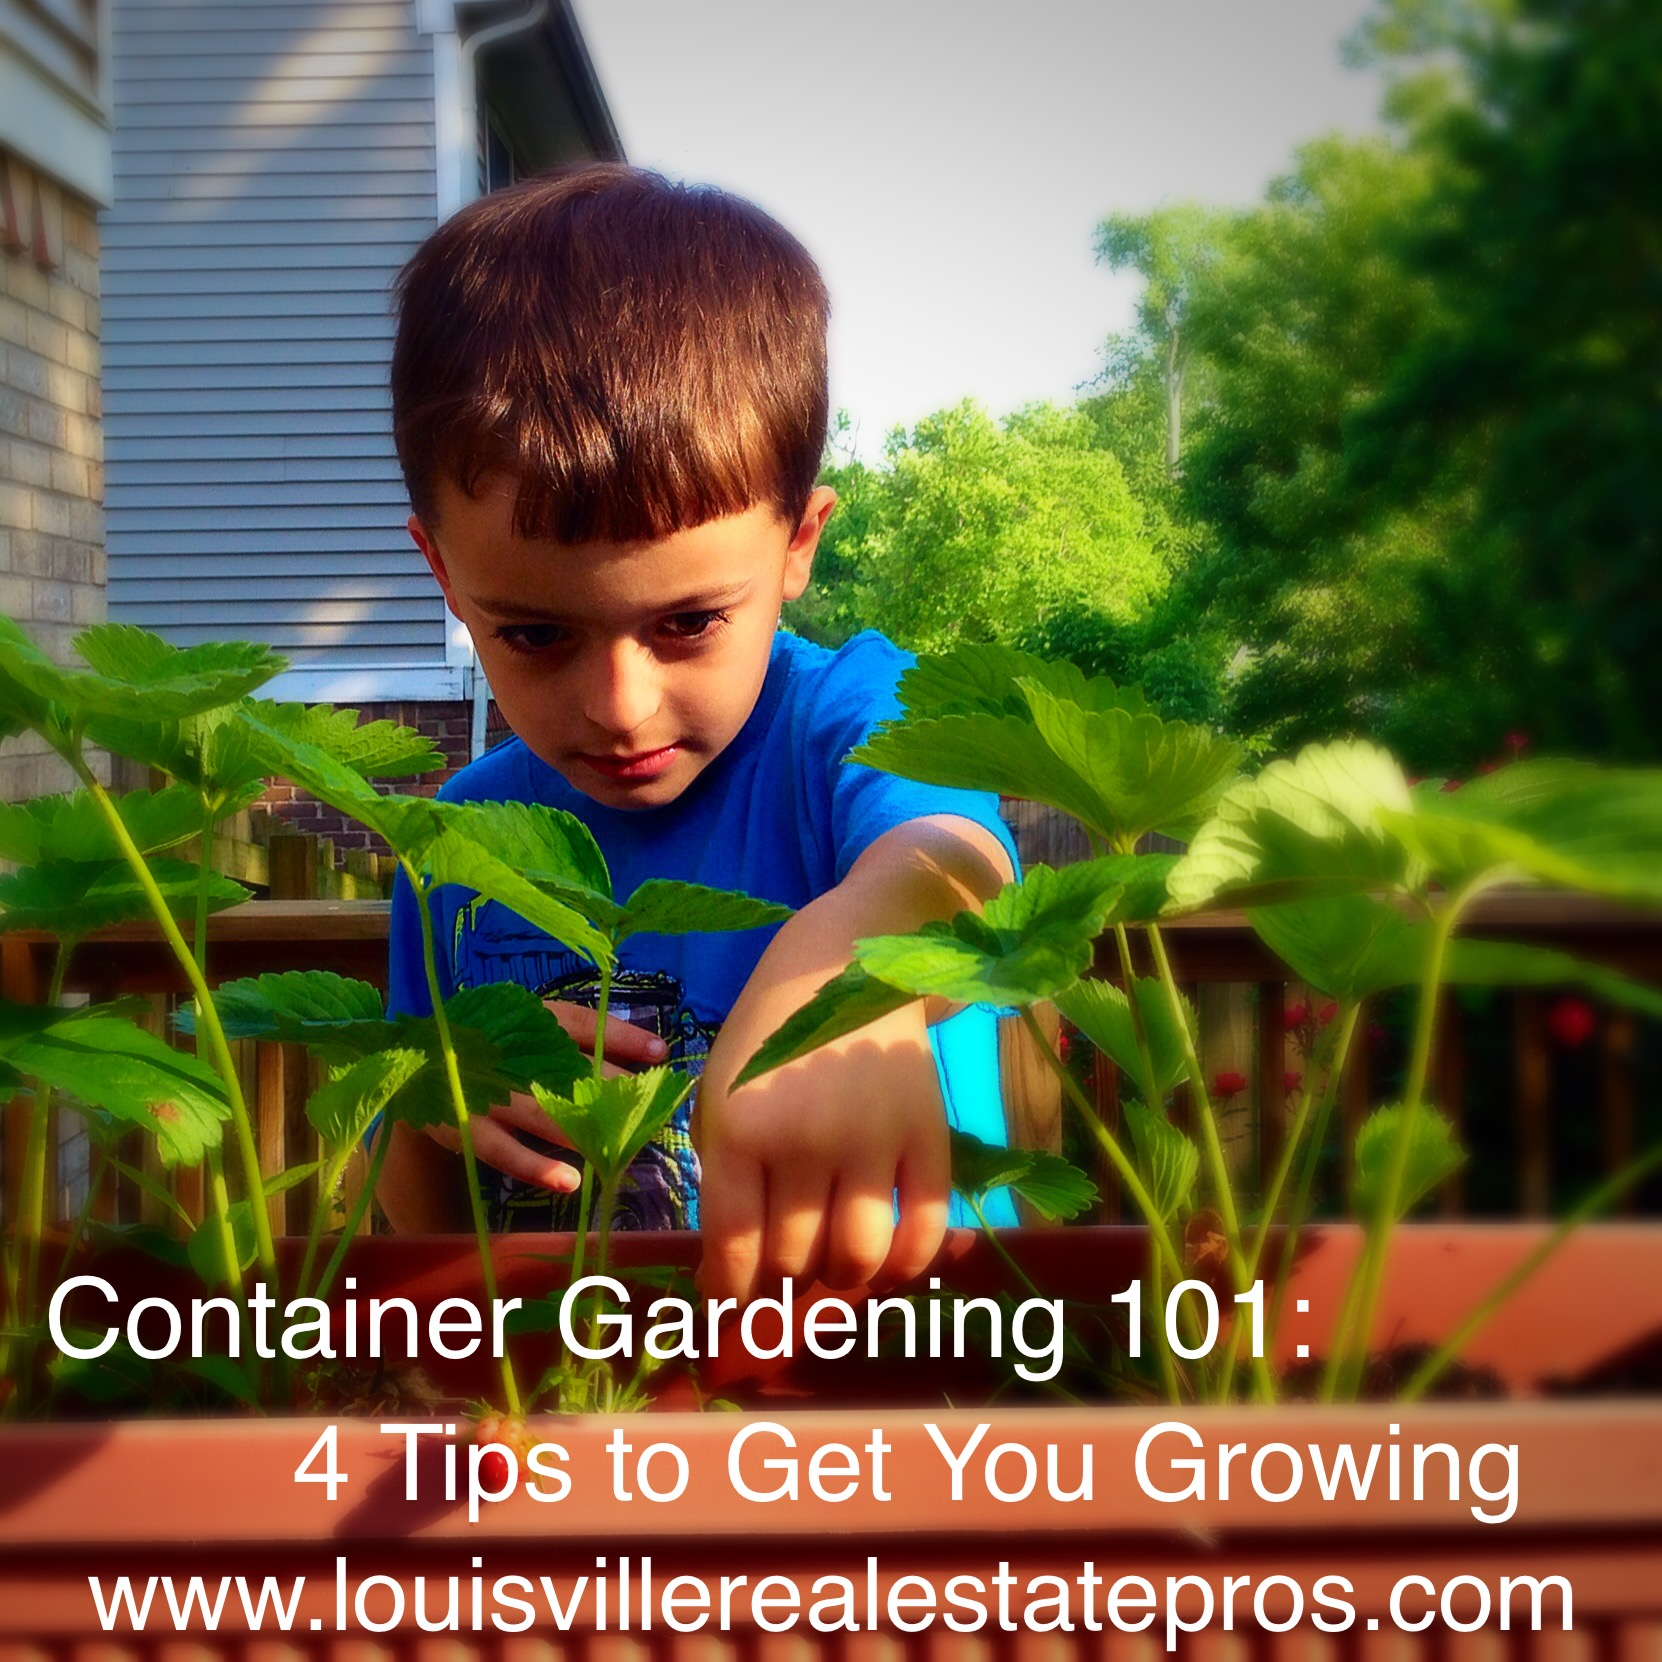 Container Gardening 101: 4 Tips to Get You Growing